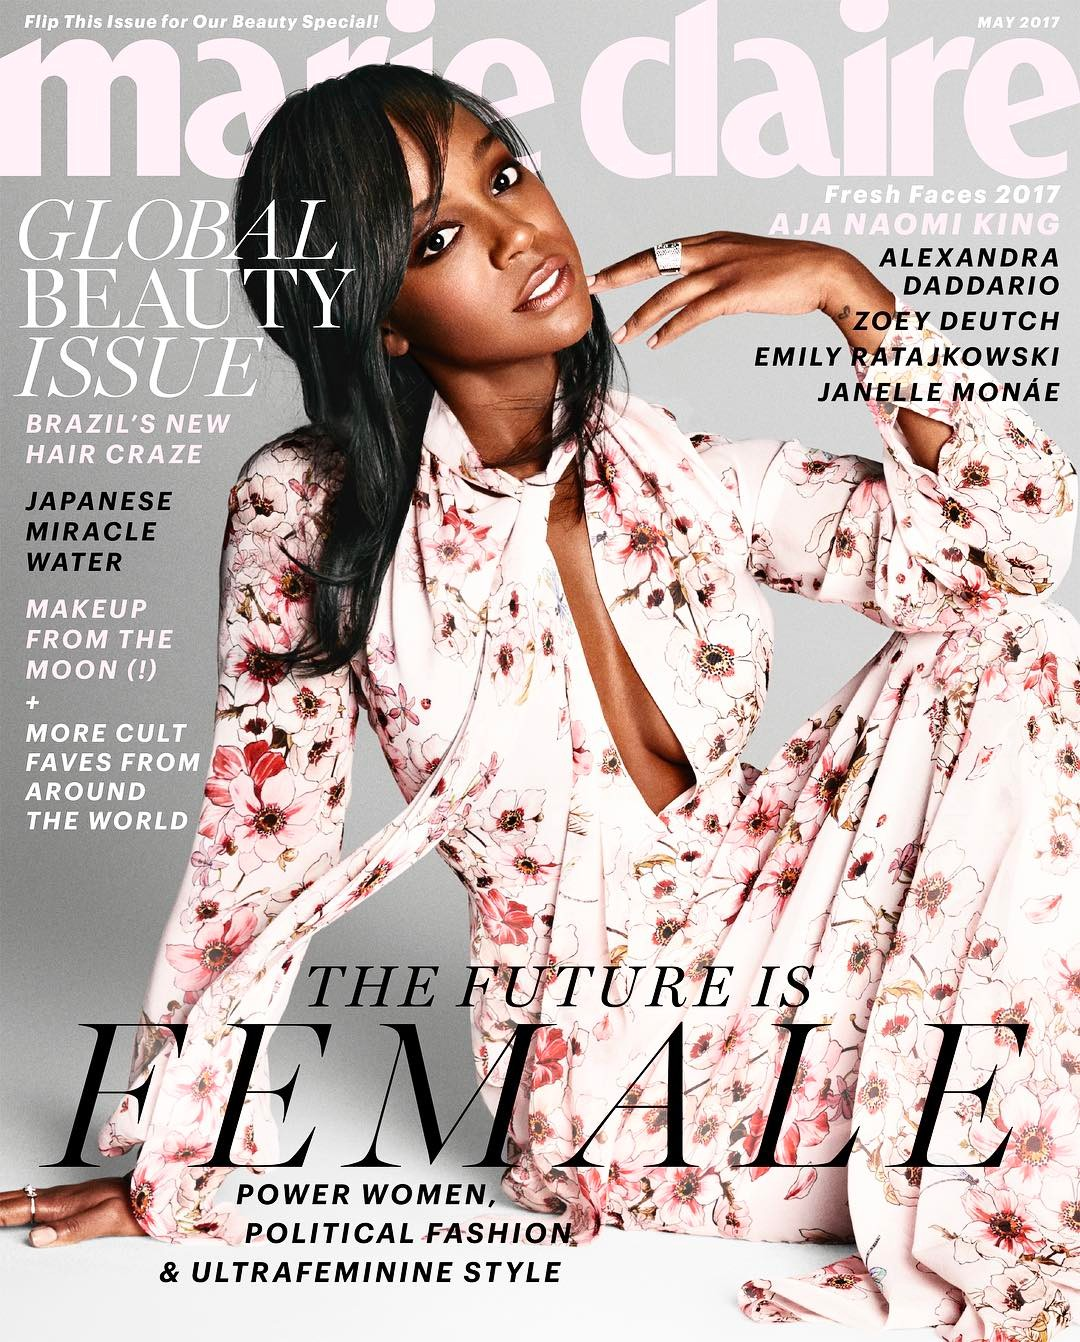 Aja Naomi King covers Marie Claire's Fresh Faces May 2017 issue